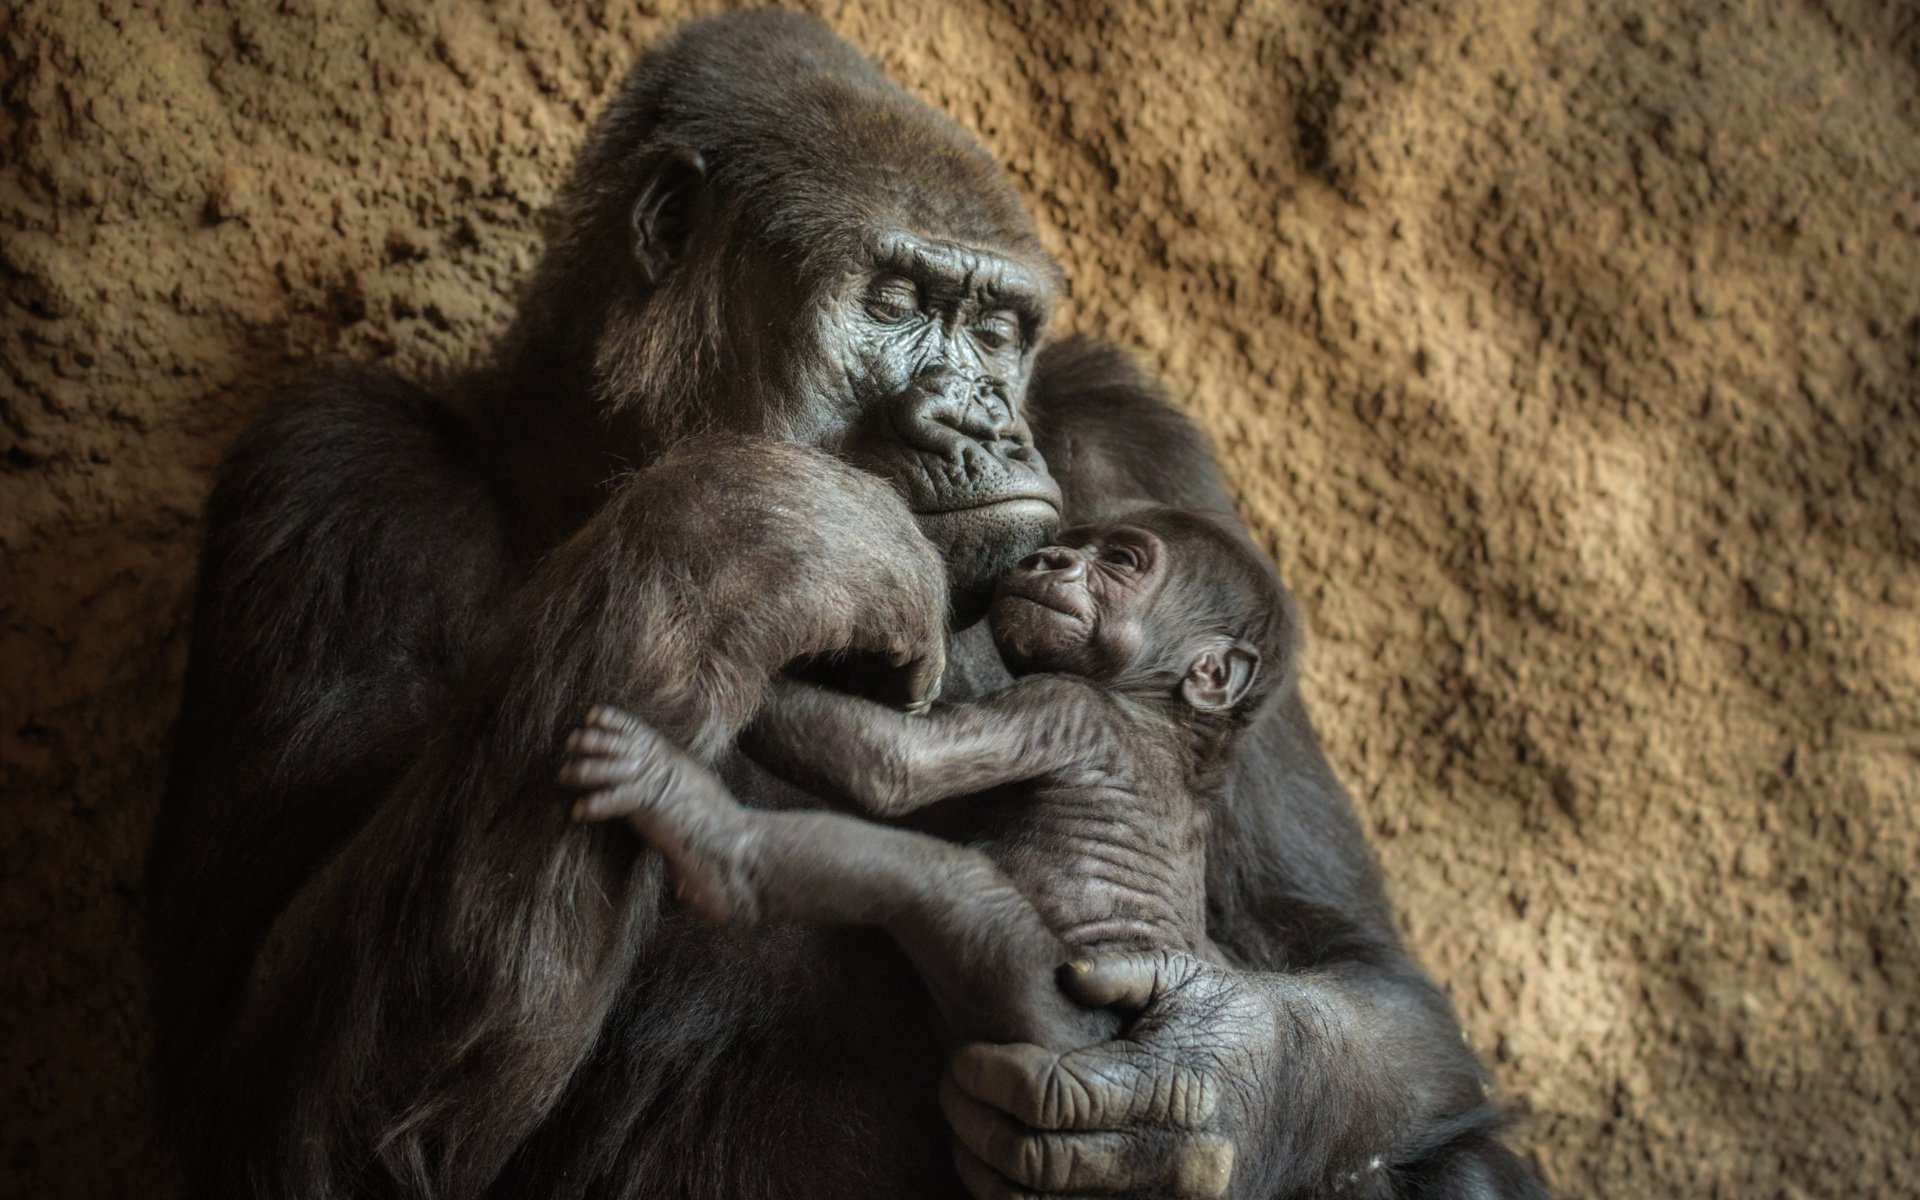 Mum Gorilla with Baby Image